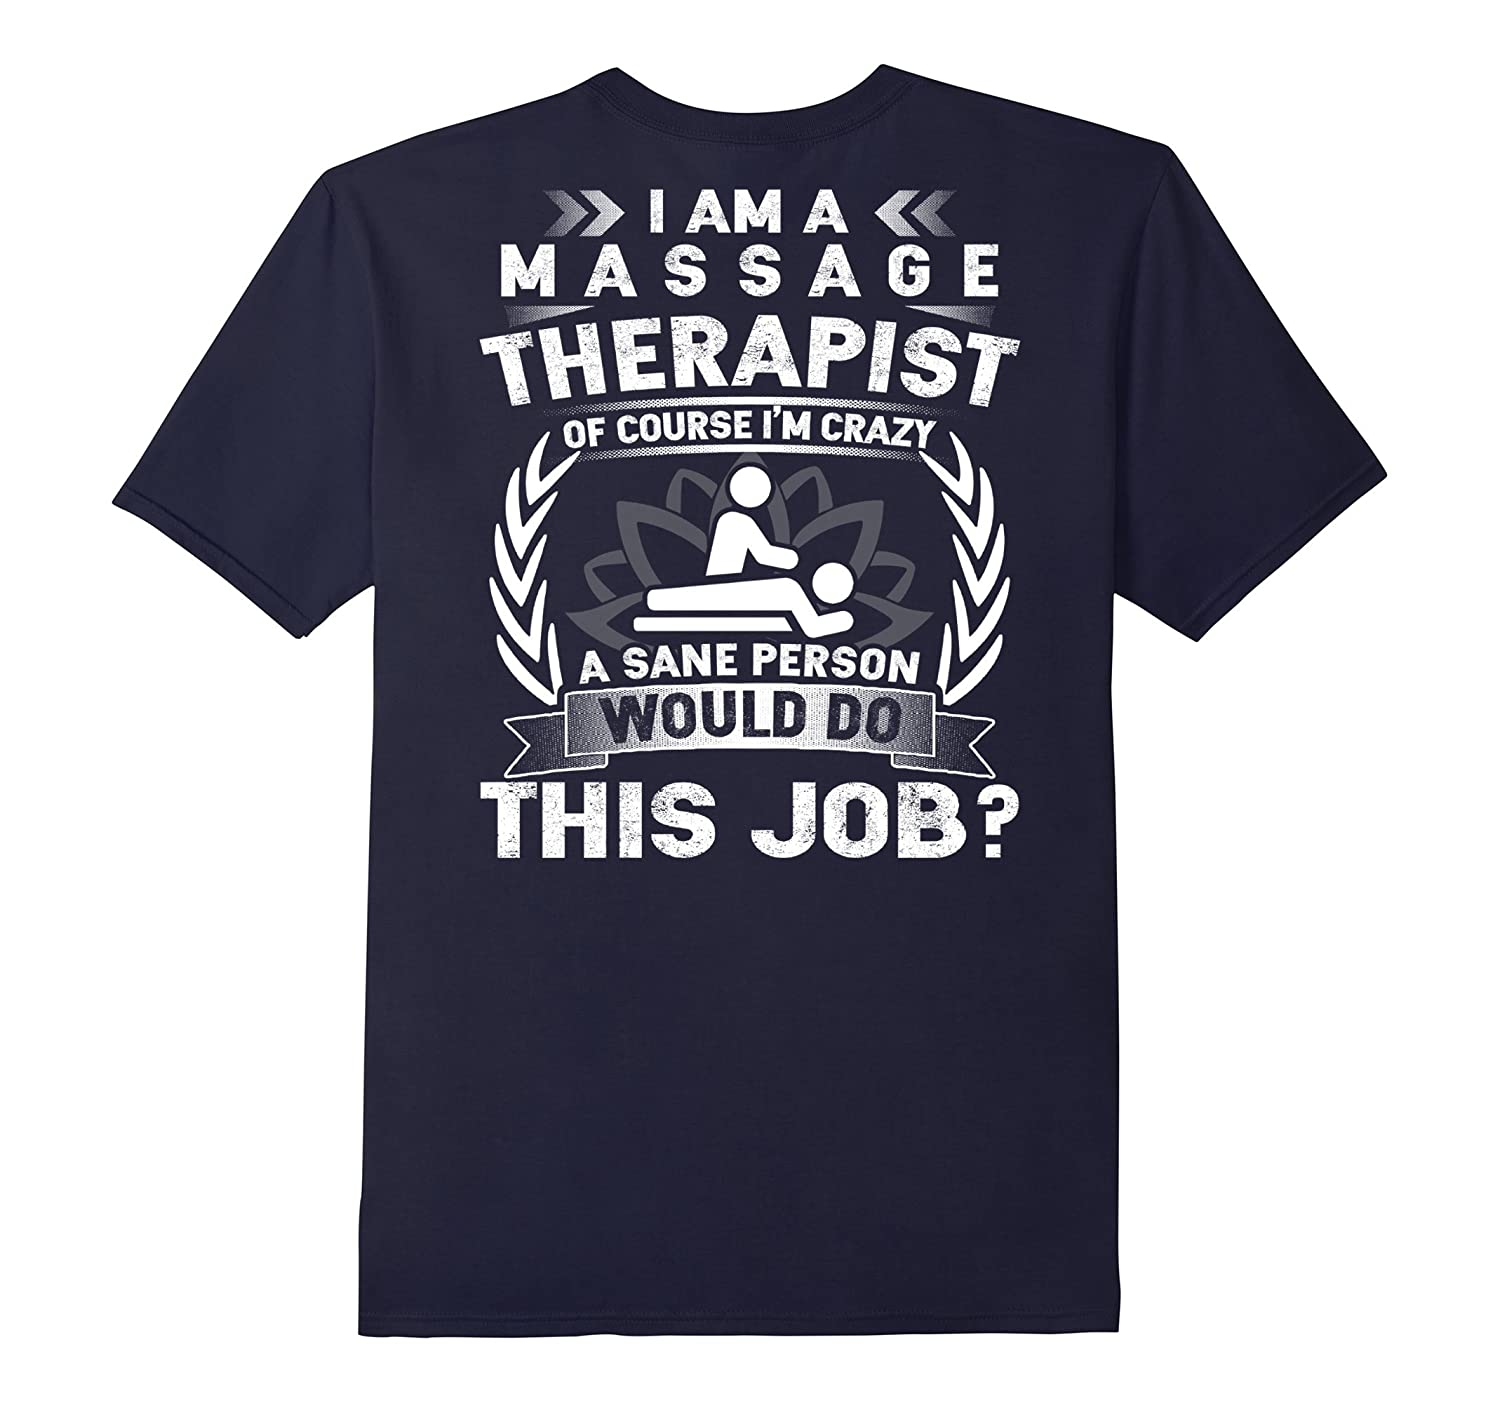 I Am A Massage Therapist T-shirt Im Crazy A Sane Person-TD